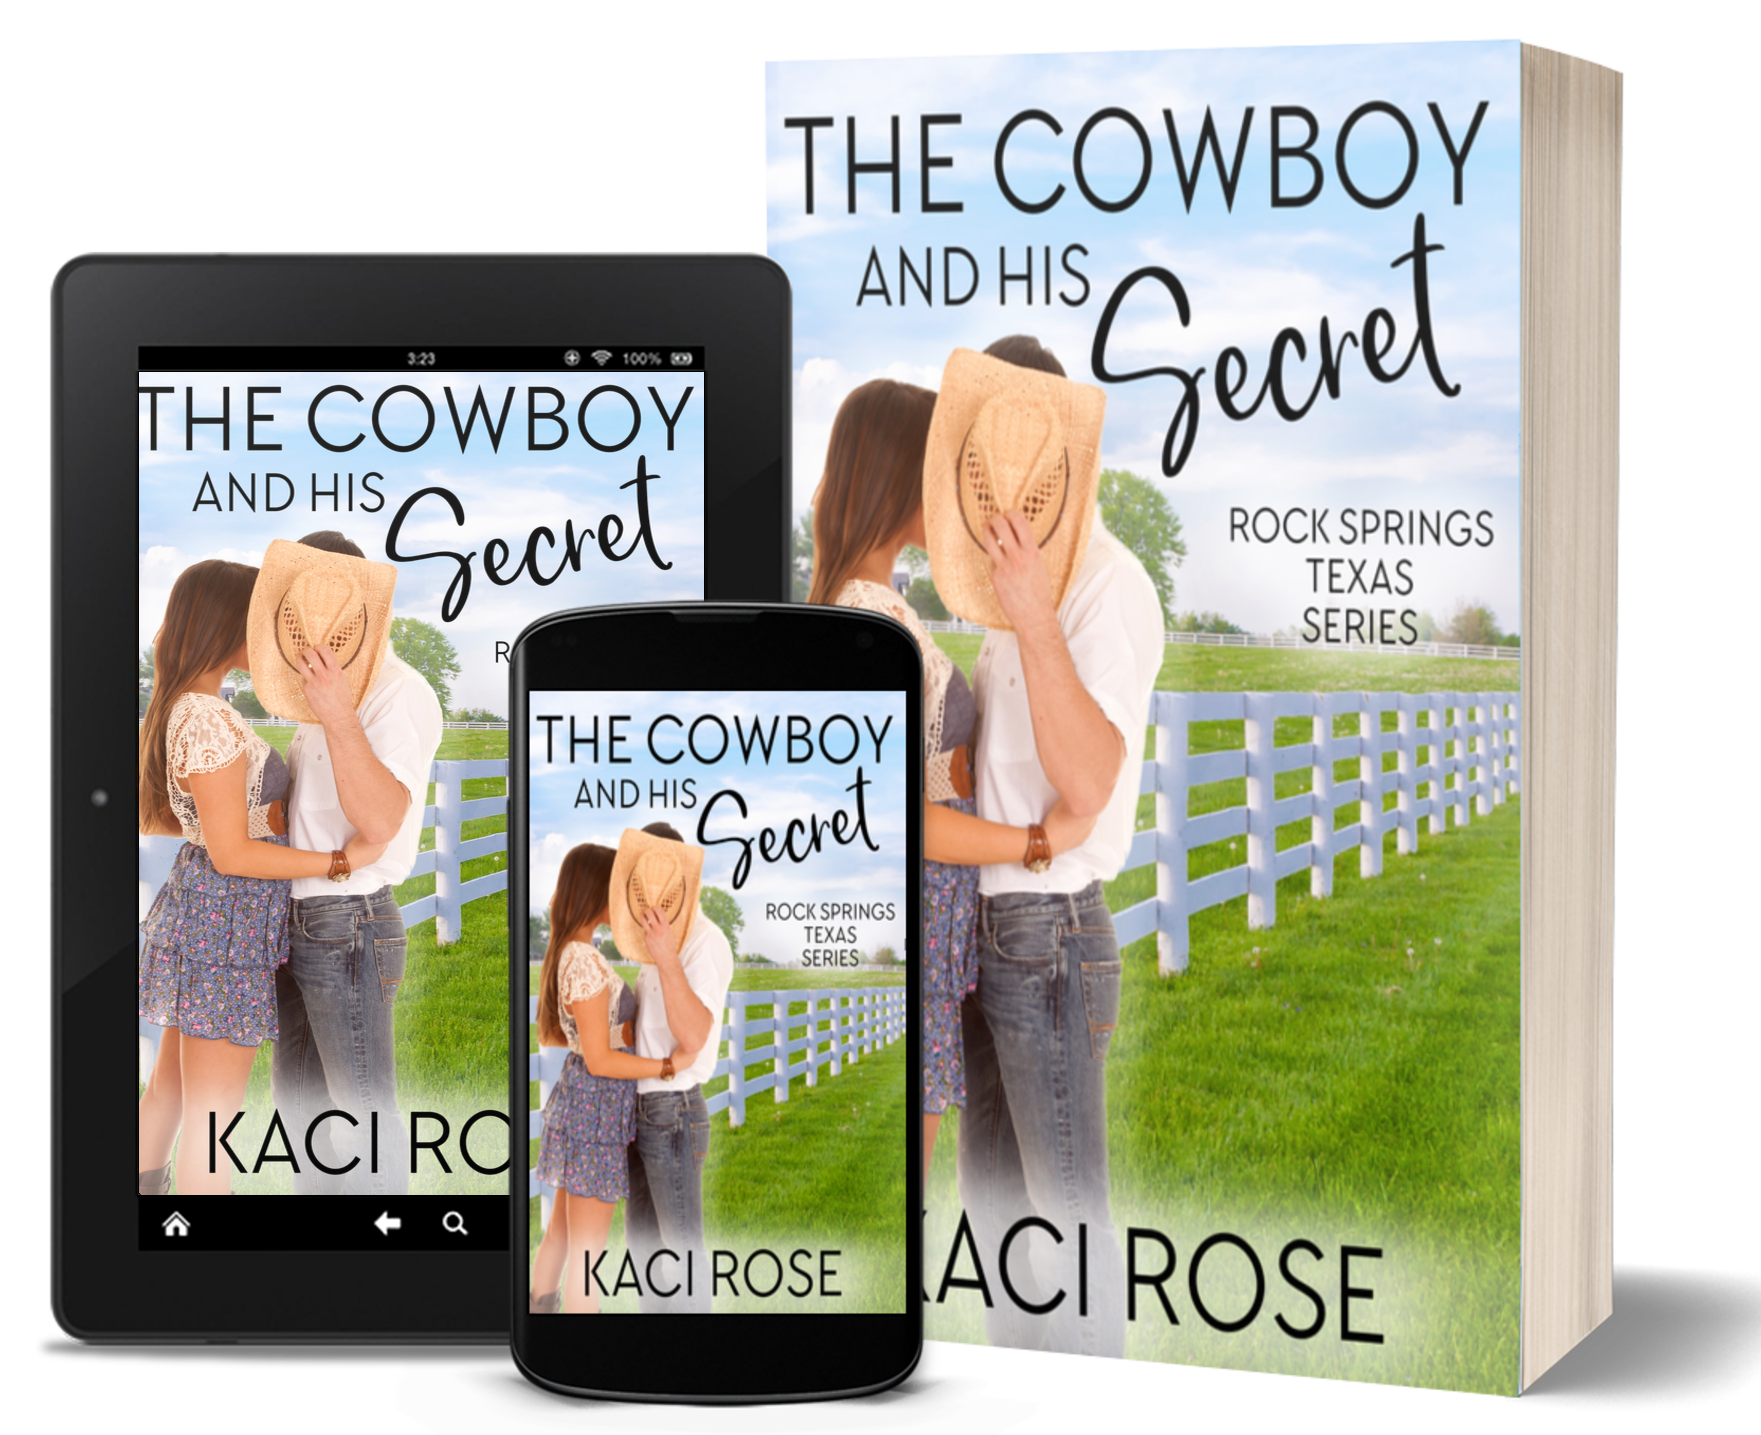 The Cowboy and His Secret - covers